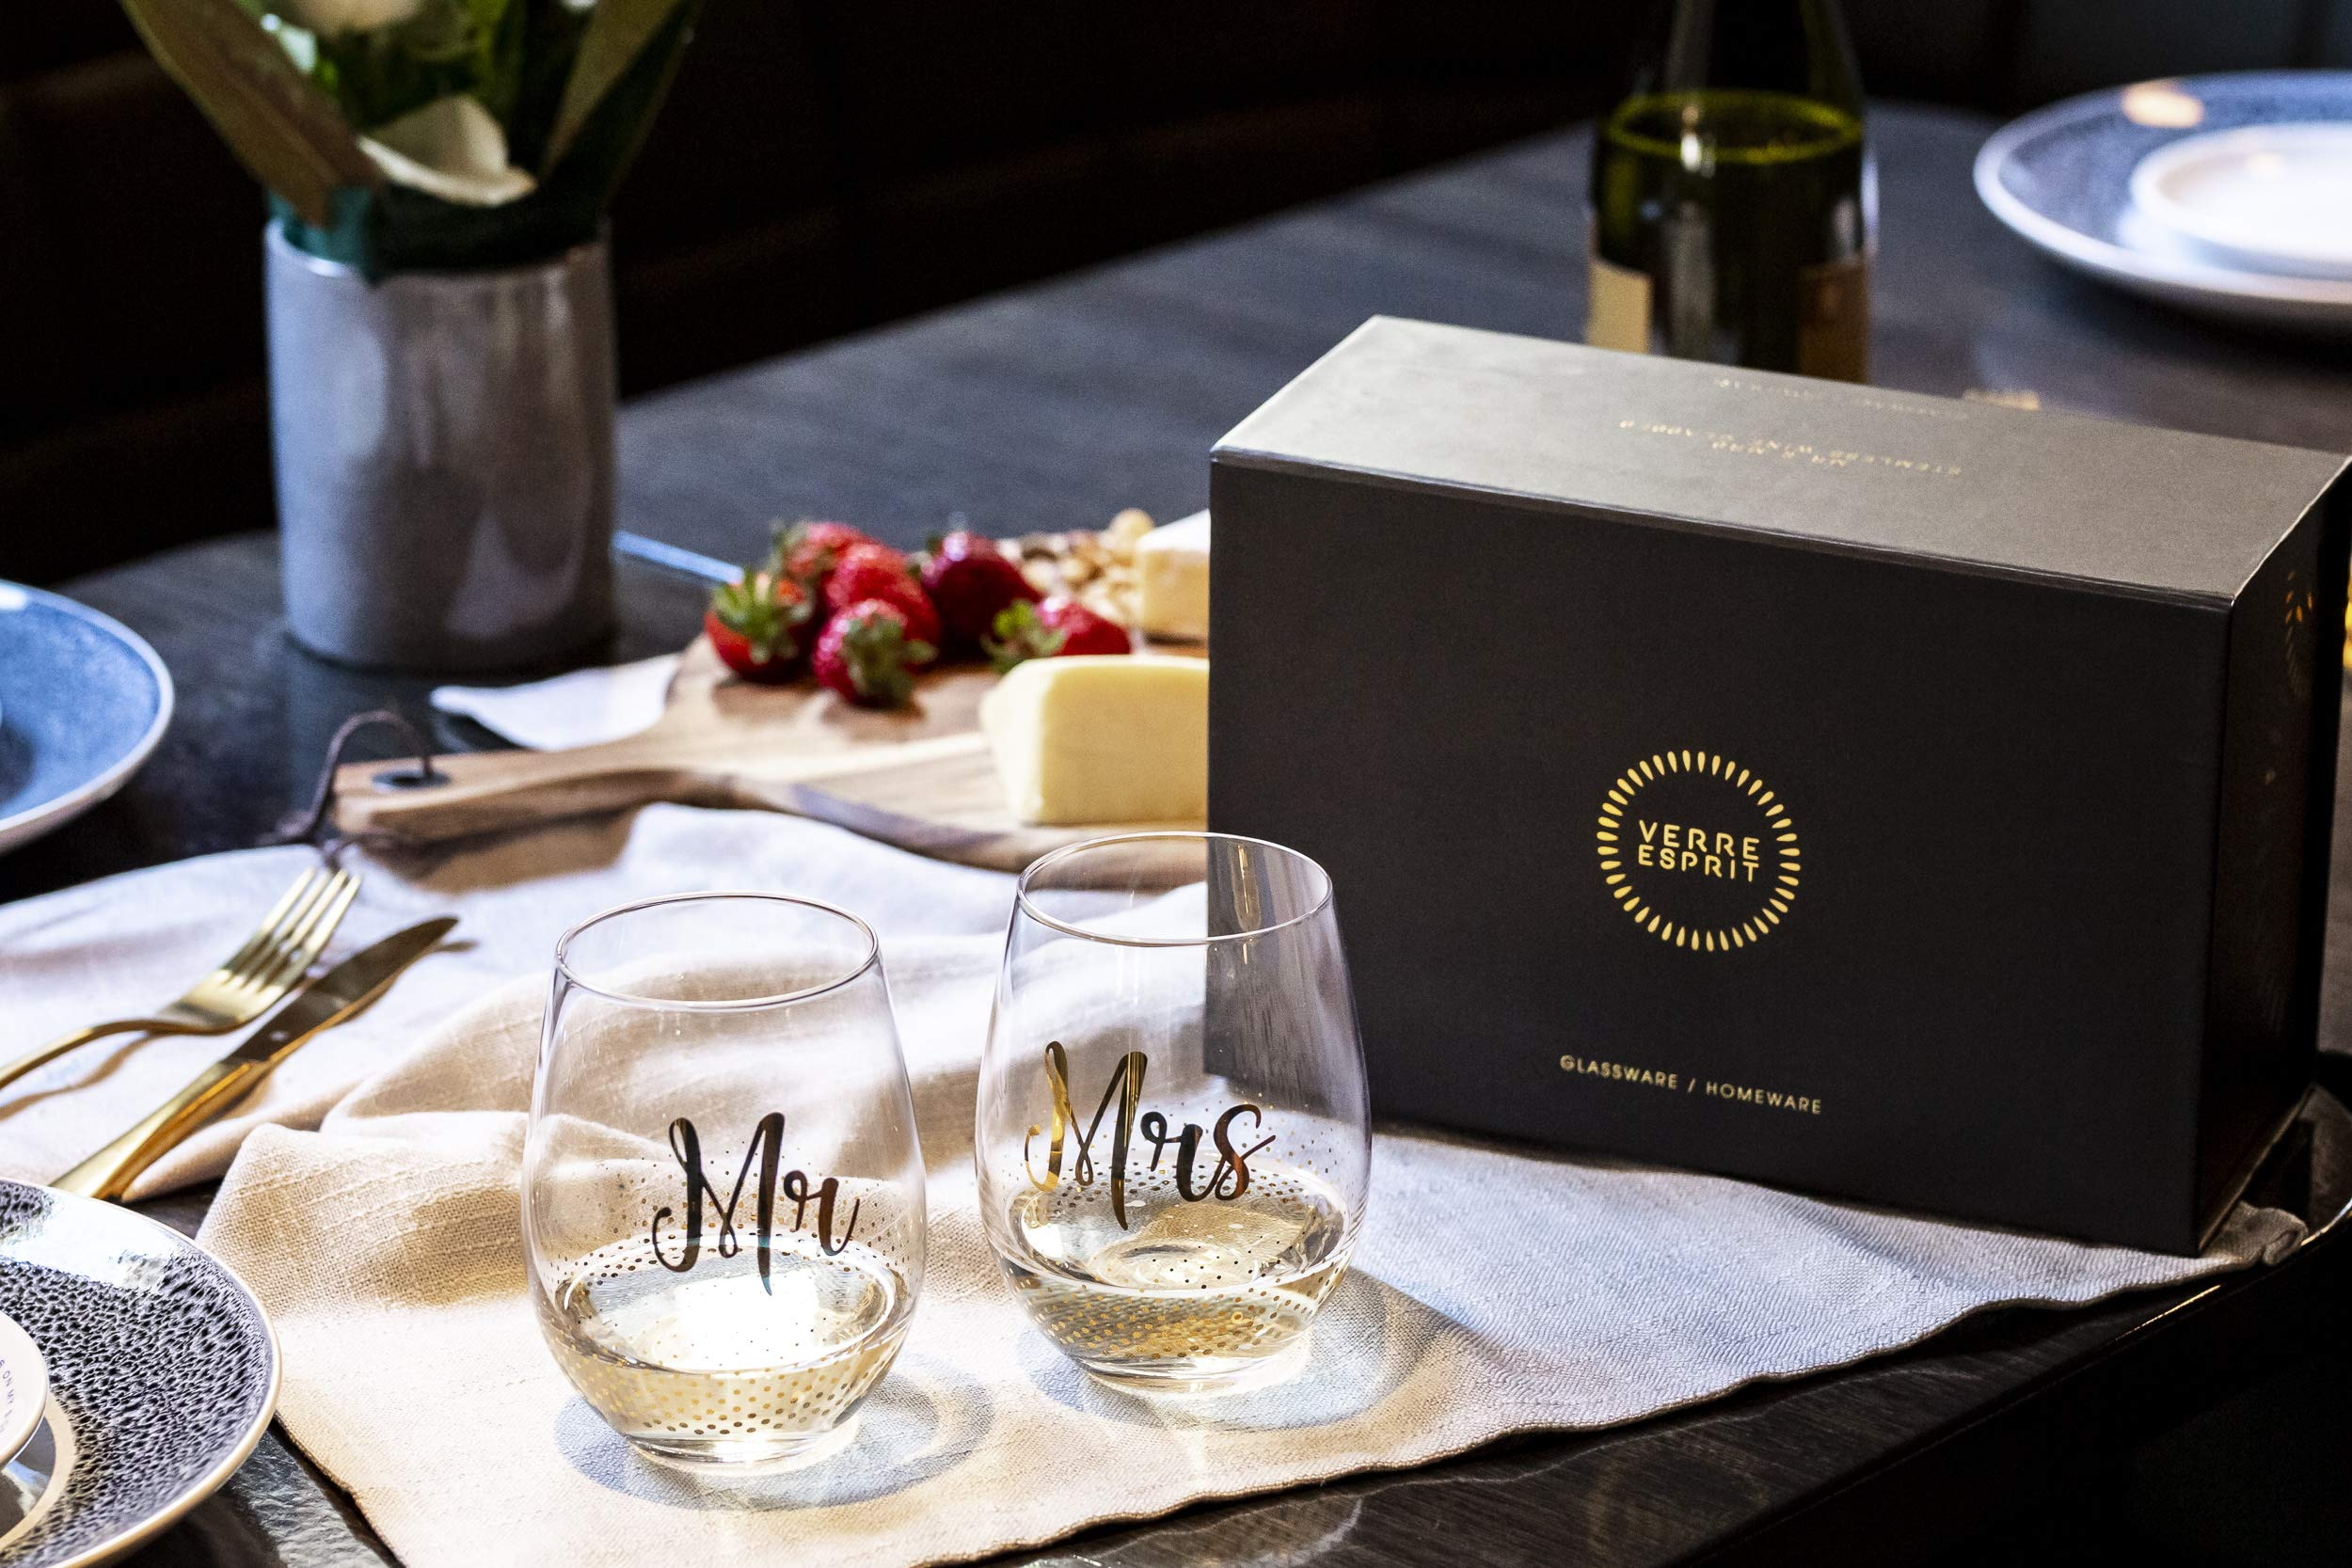 Mr & Mrs Gifts, set of 2 Crystal stemless wine glasses, with beautiful gift box, Perfect Engagement Gift, Wedding gift, Anniversary or Couples gift. by Verre Esprit (Image #3)